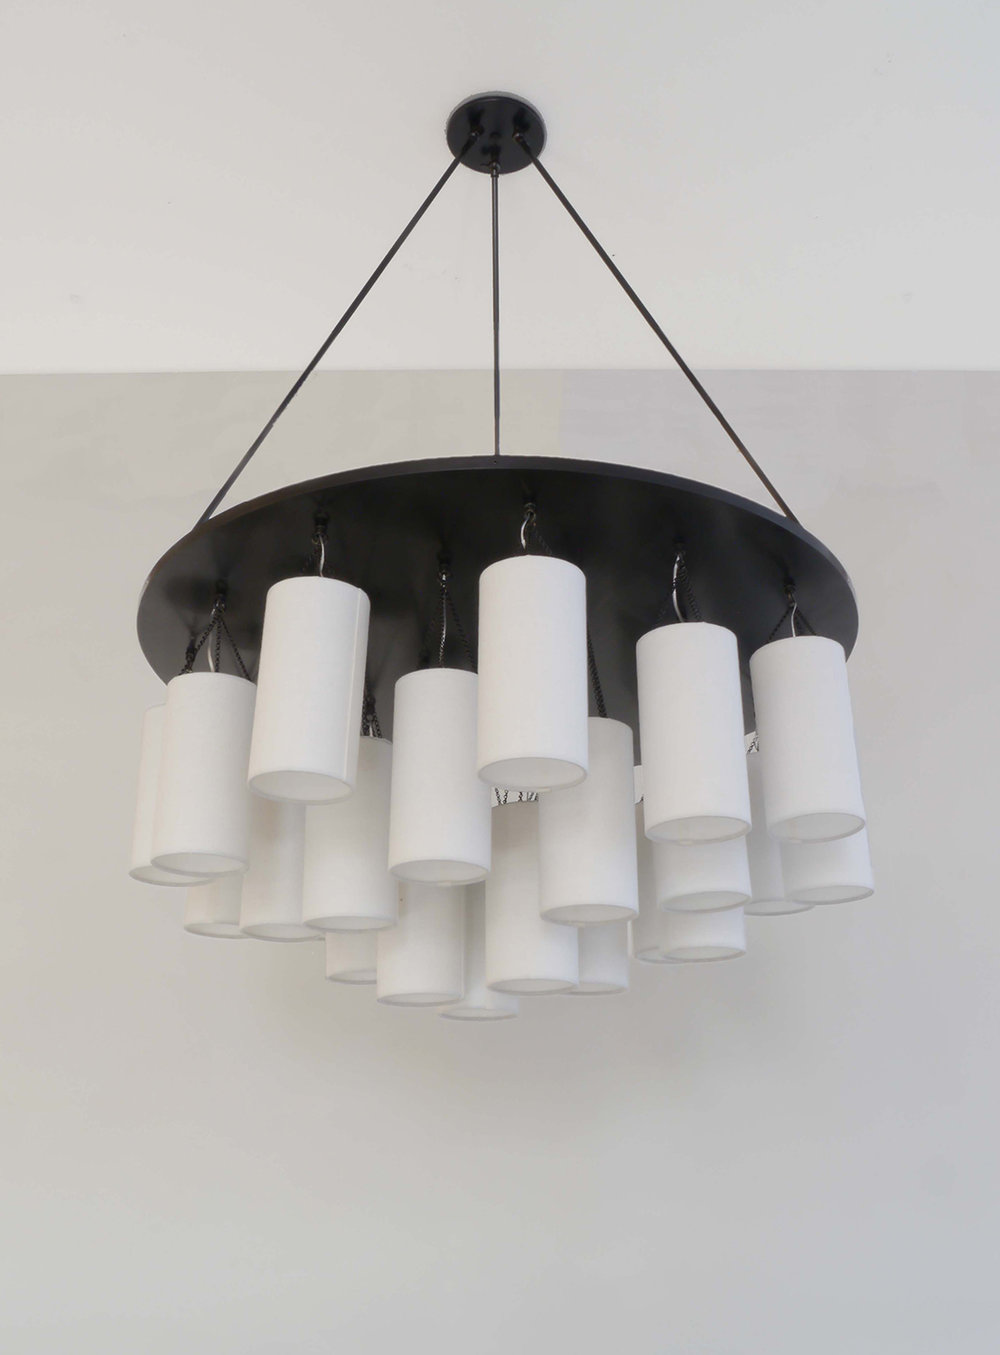 Bespoke_C-155_Multi-Tiered Shade Pendant_Black_White.jpg